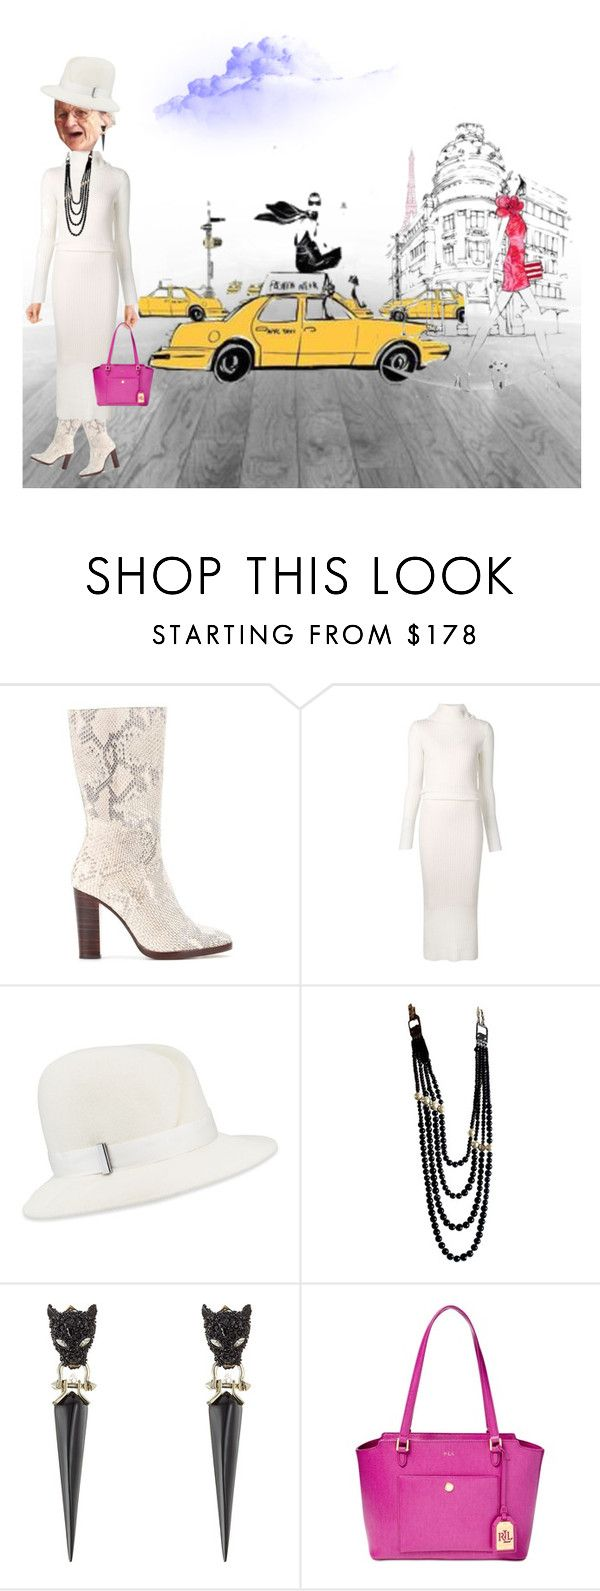 """""""Grandma Got A Spiffy New Outfit.."""" by marlenajo-b ❤ liked on Polyvore featuring Chloé, Alice + Olivia, Gigi Burris Millinery, Chanel, Alexis Bittar and Lauren Ralph Lauren"""